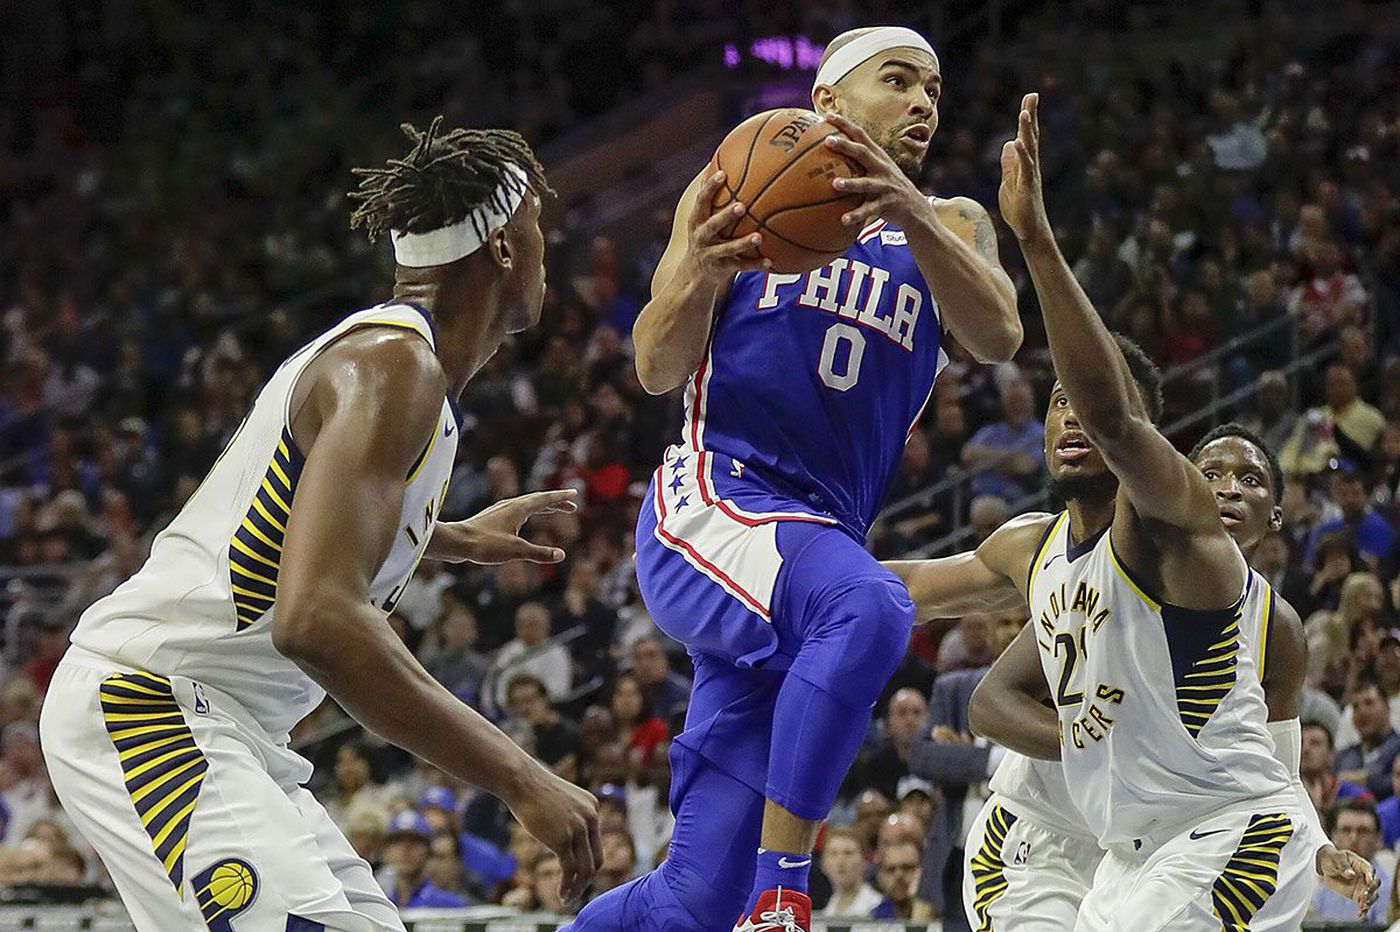 Sixers' Jerryd Bayless out indefinitely with left wrist injury